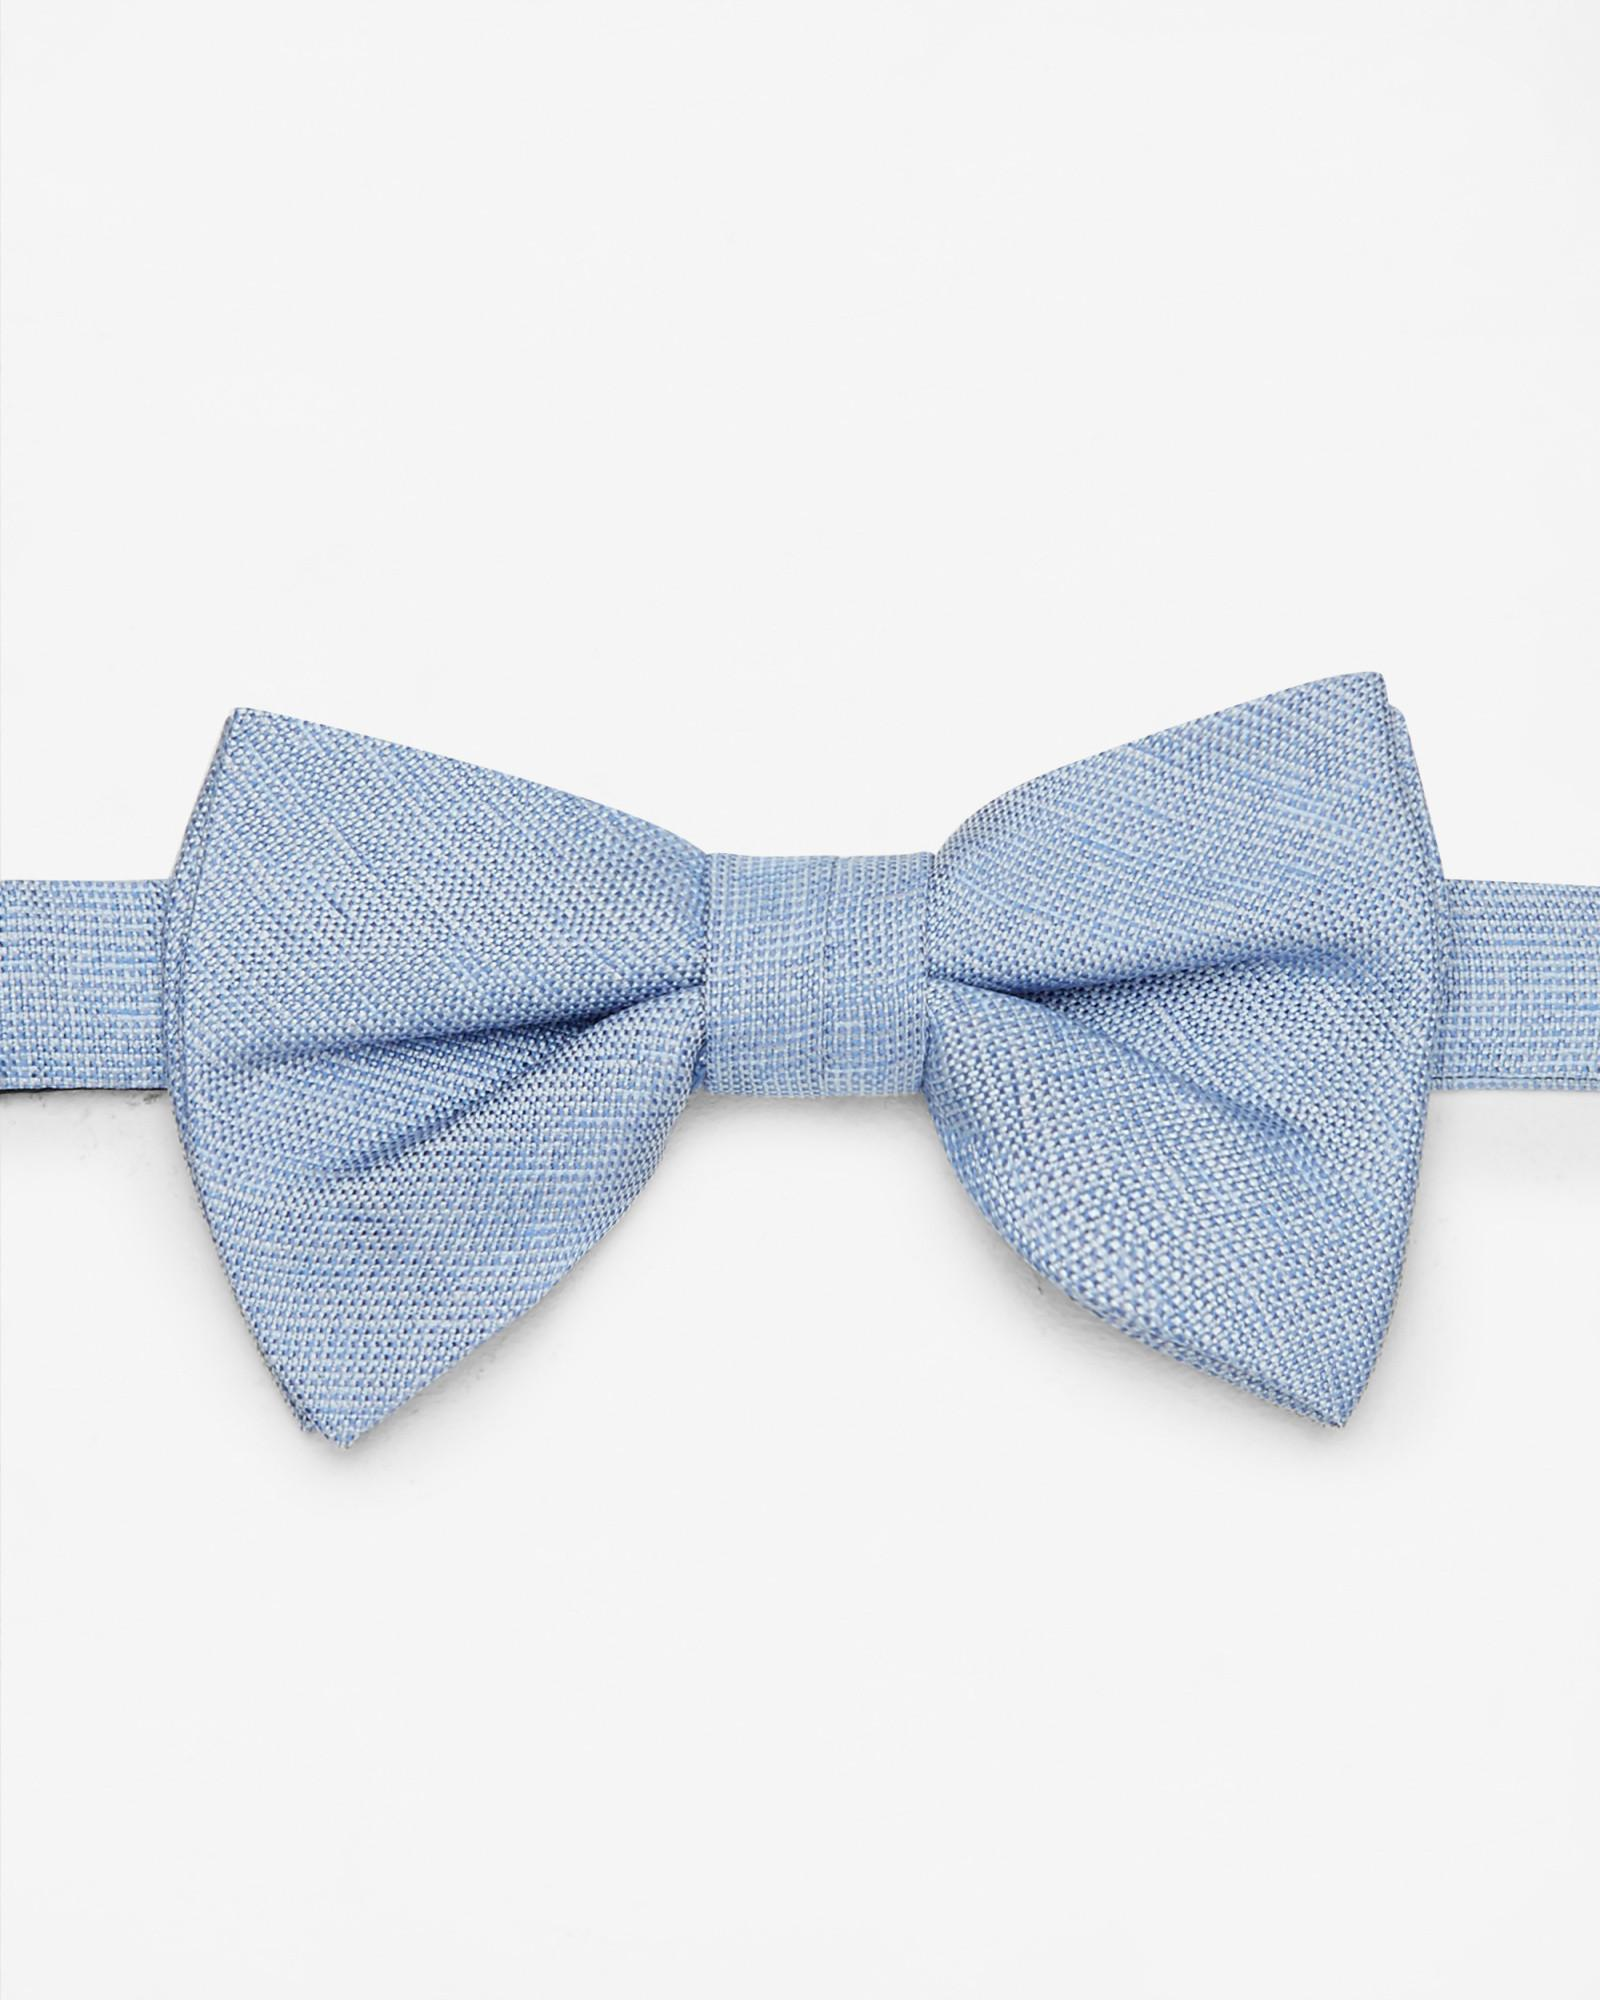 c593382ff2d08a Ted Baker Textured Silk Bow Tie in Blue for Men - Lyst